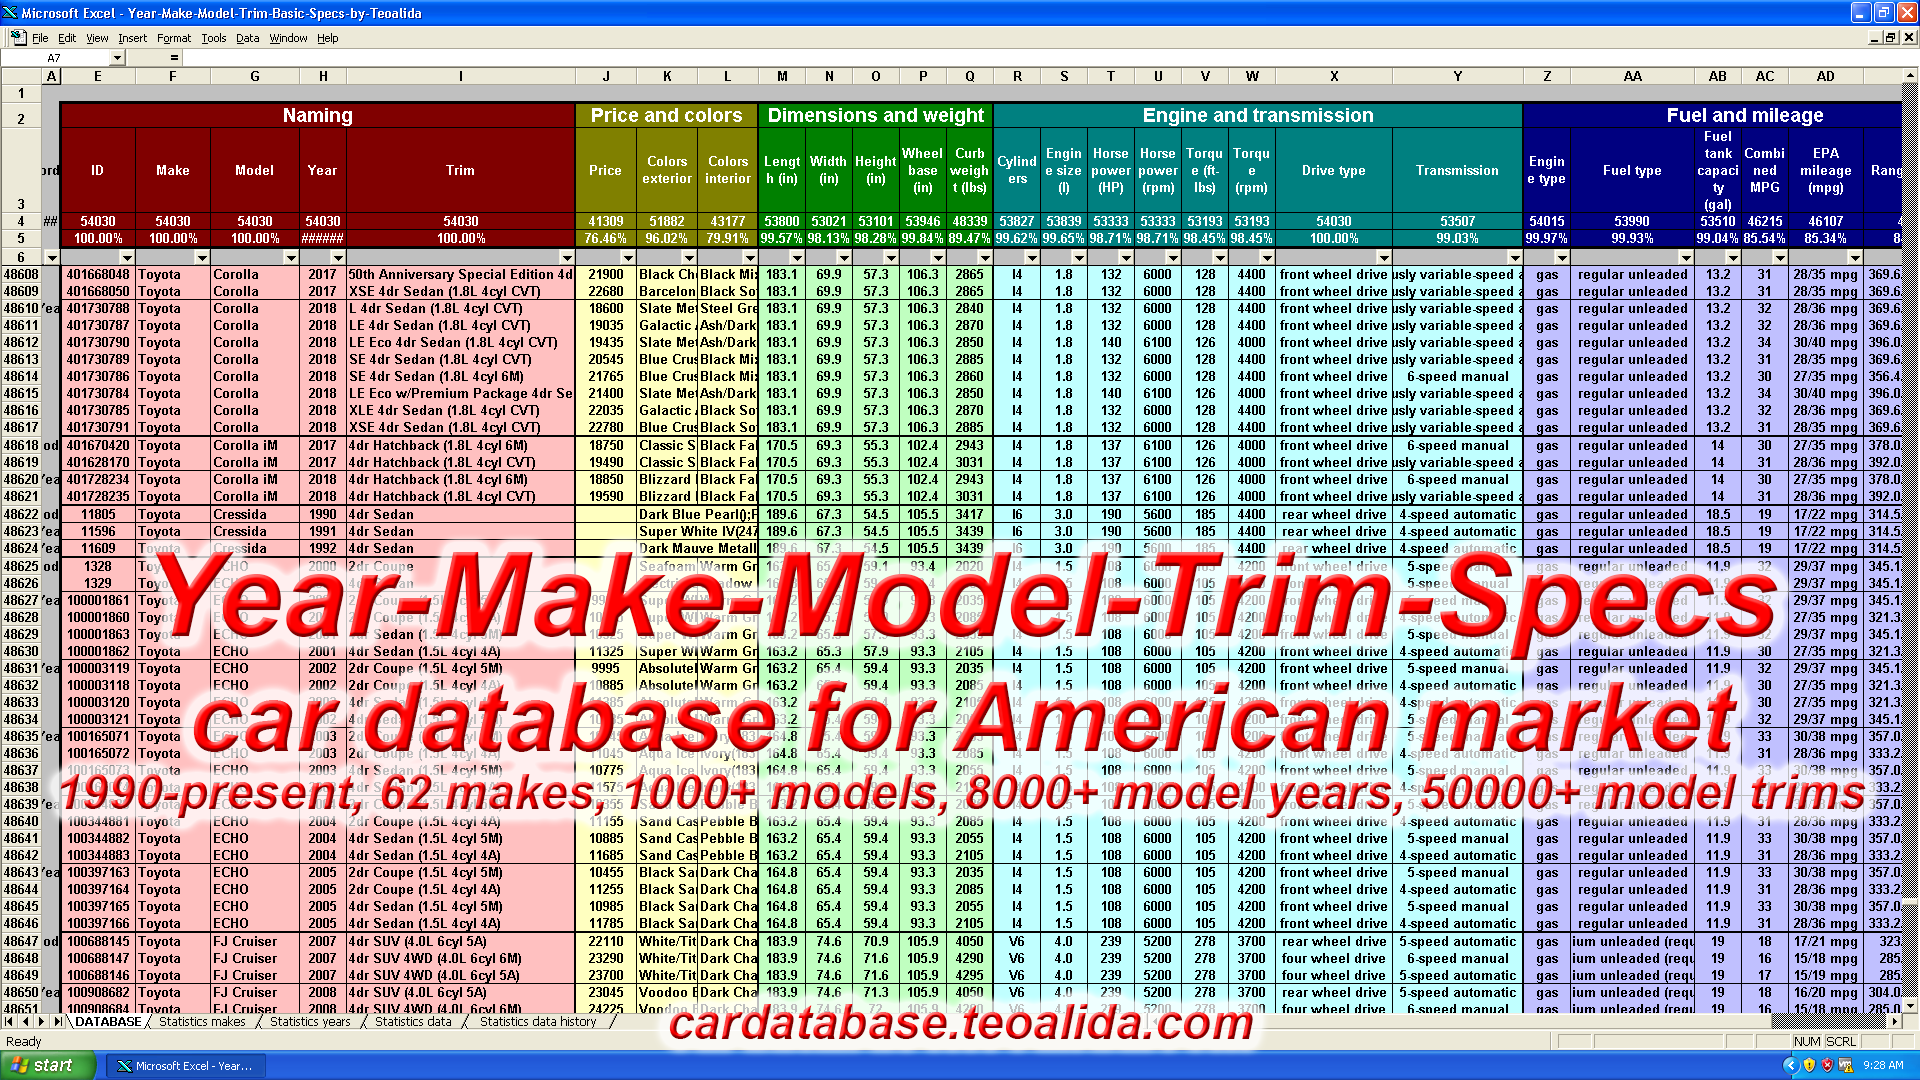 Car Database - make, model, trim, full specifications in ... - photo#21